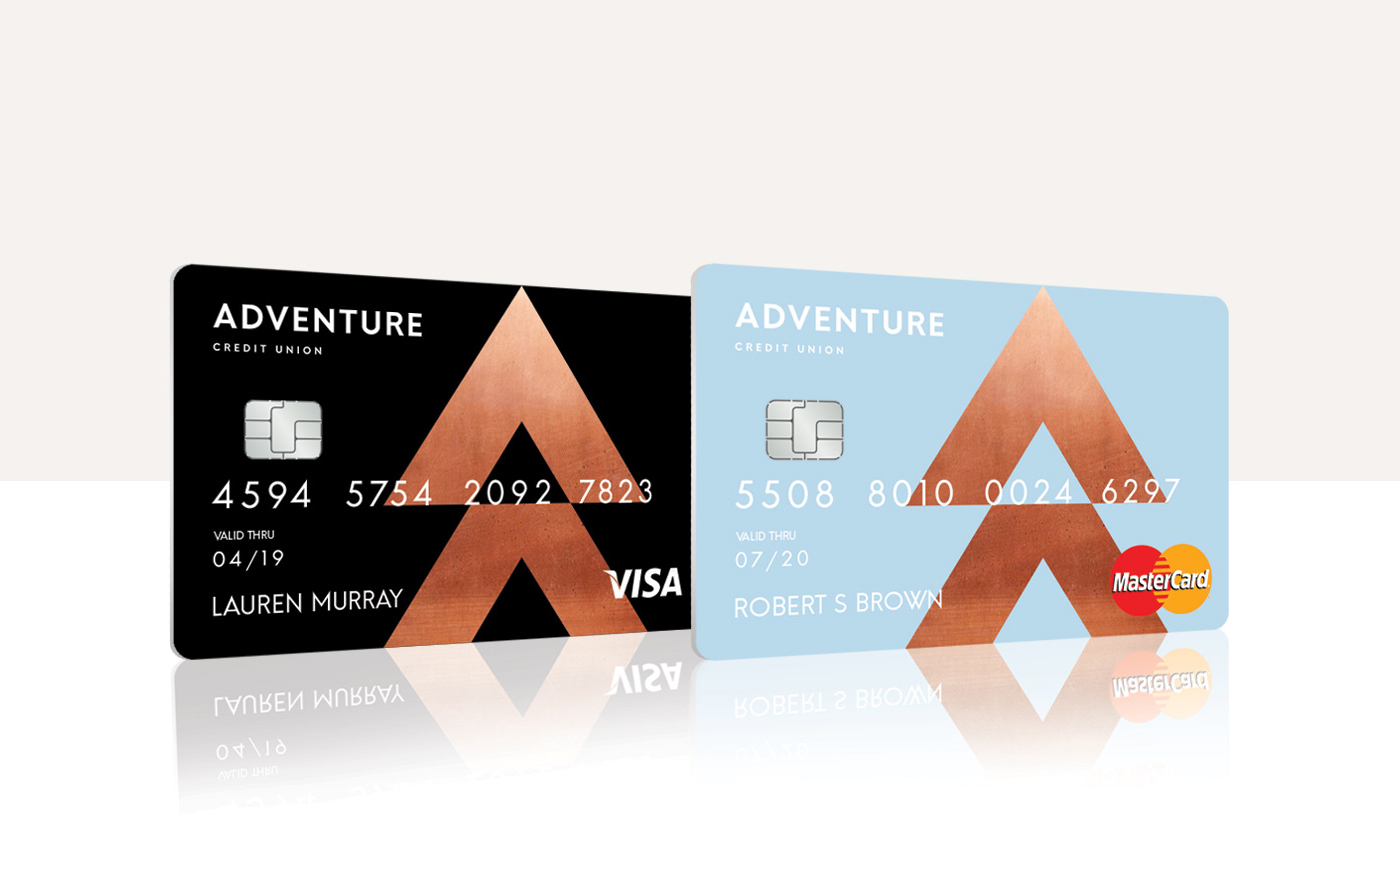 Adventure Credit Union credit cards